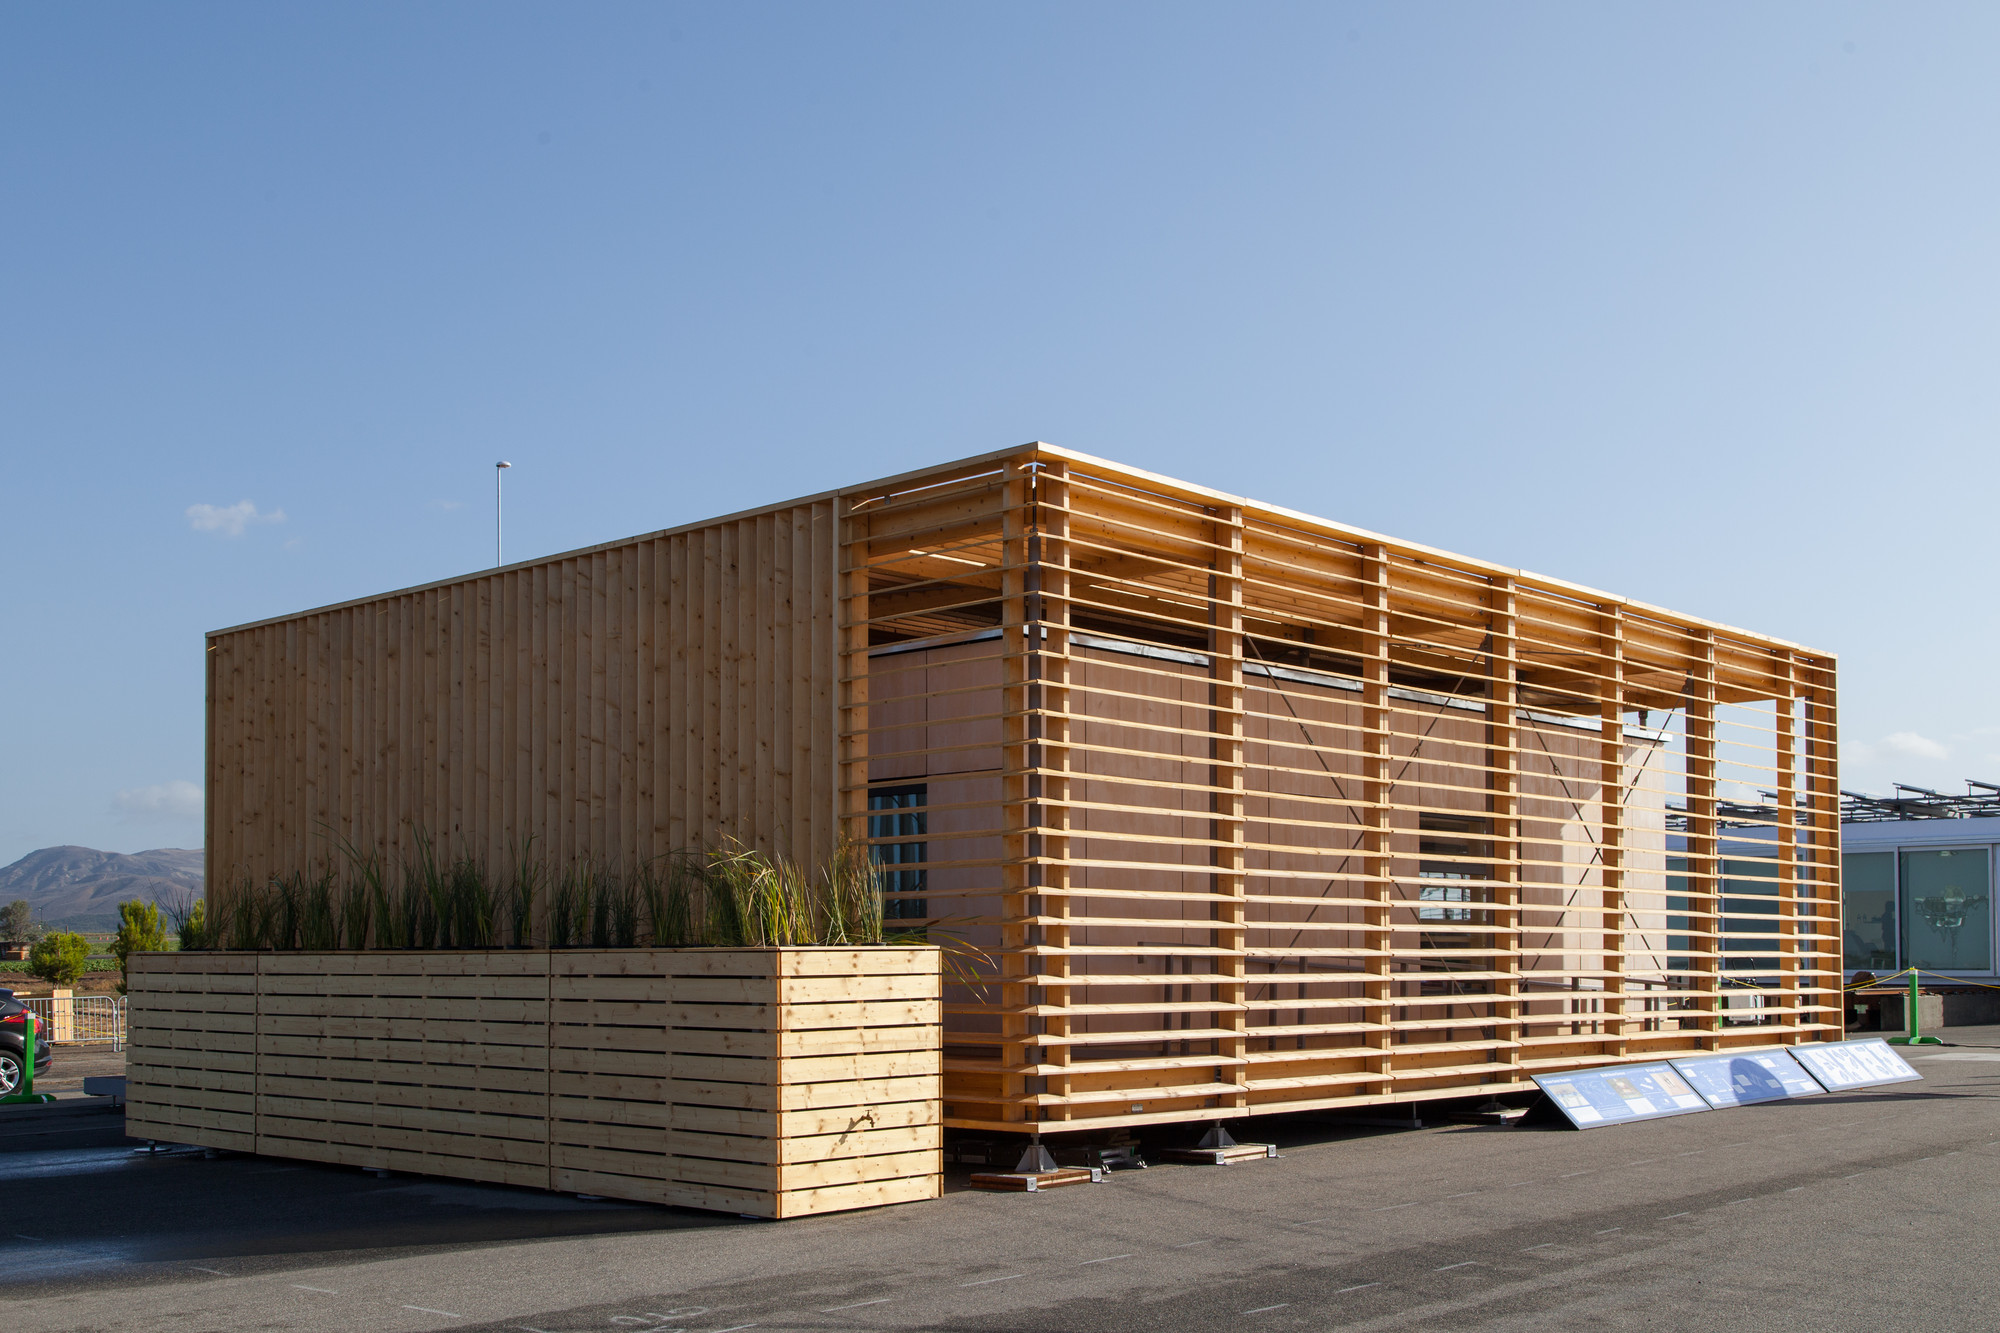 Solar Decathlon 2013: Czech Technical University Wins Architecture Contest, Places Third Overall, © Jason Flakes/U.S. Department of Energy Solar Decathlon